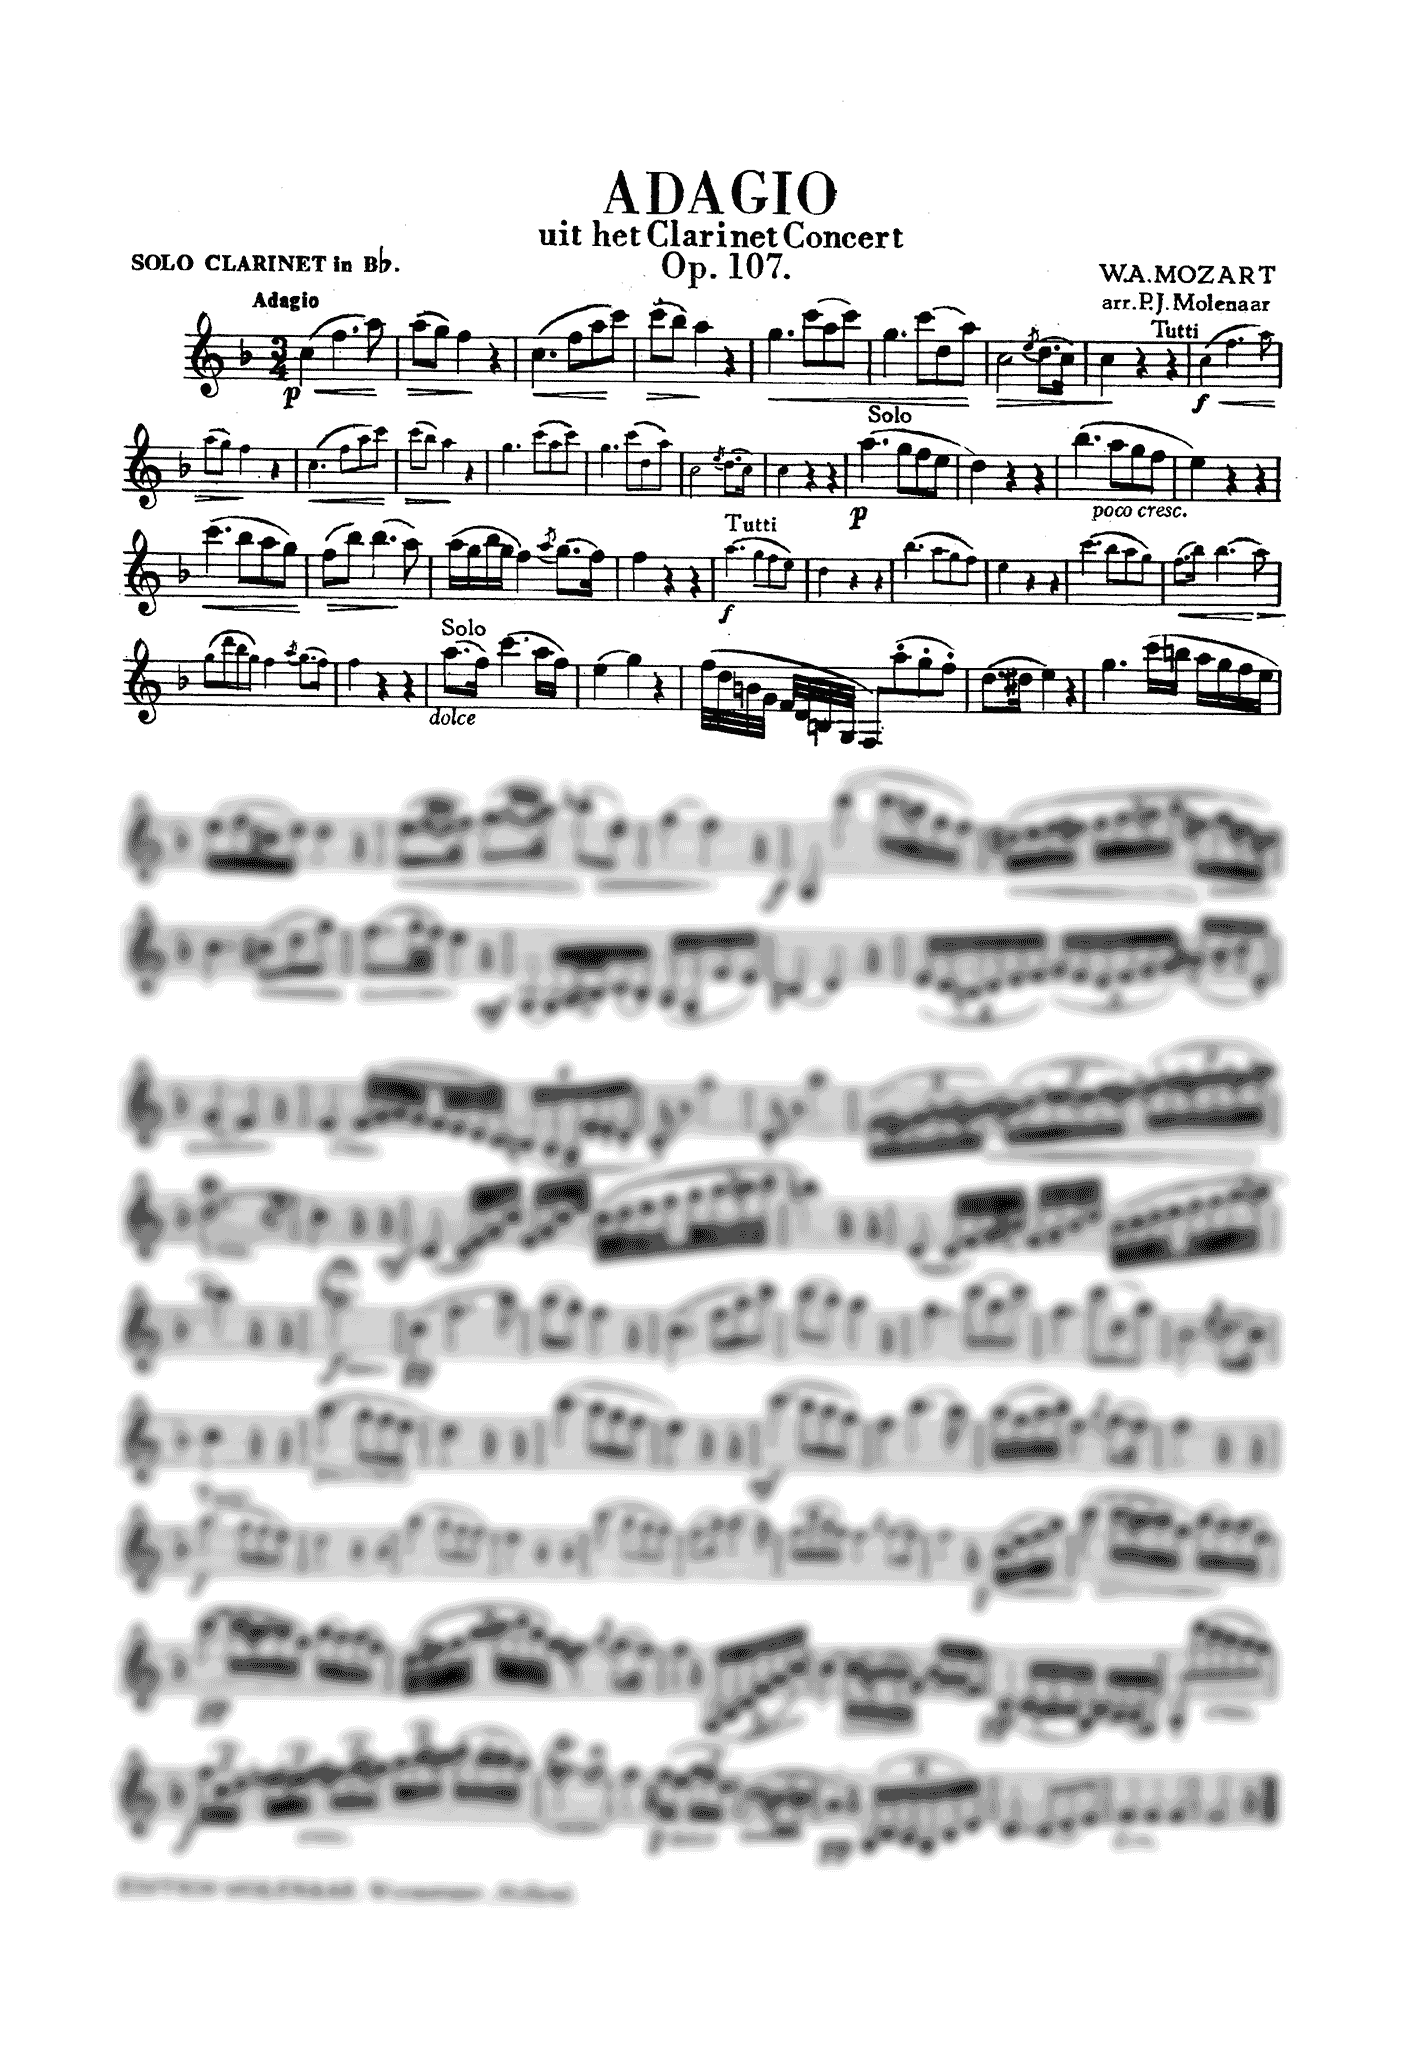 Adagio, from Clarinet Concerto Clarinet part